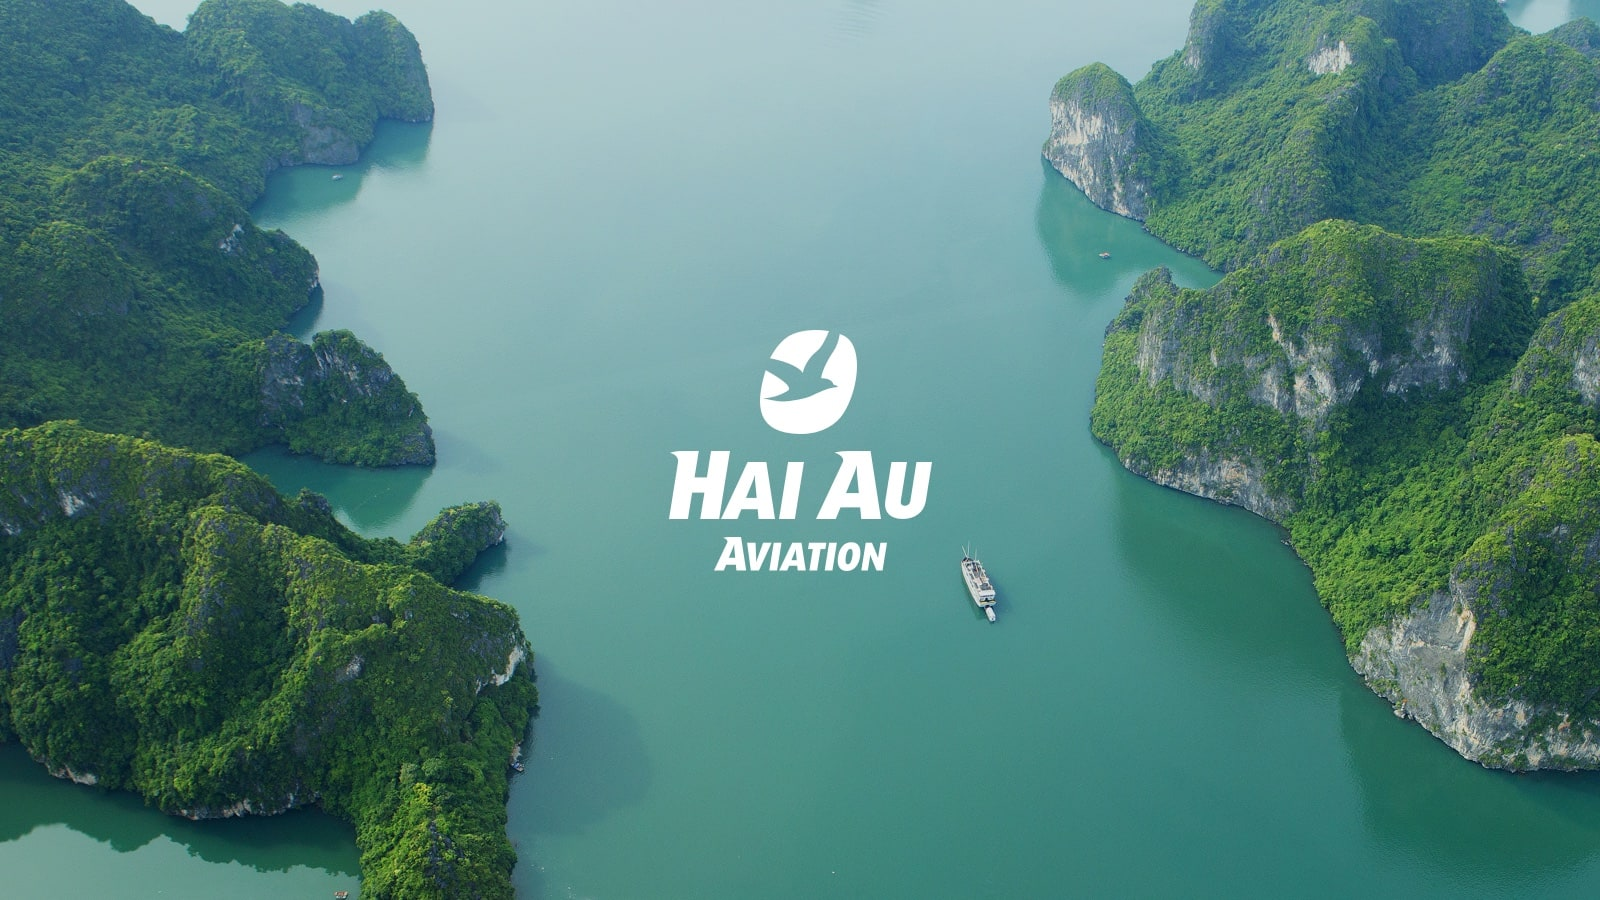 Hai Au Aviation Website